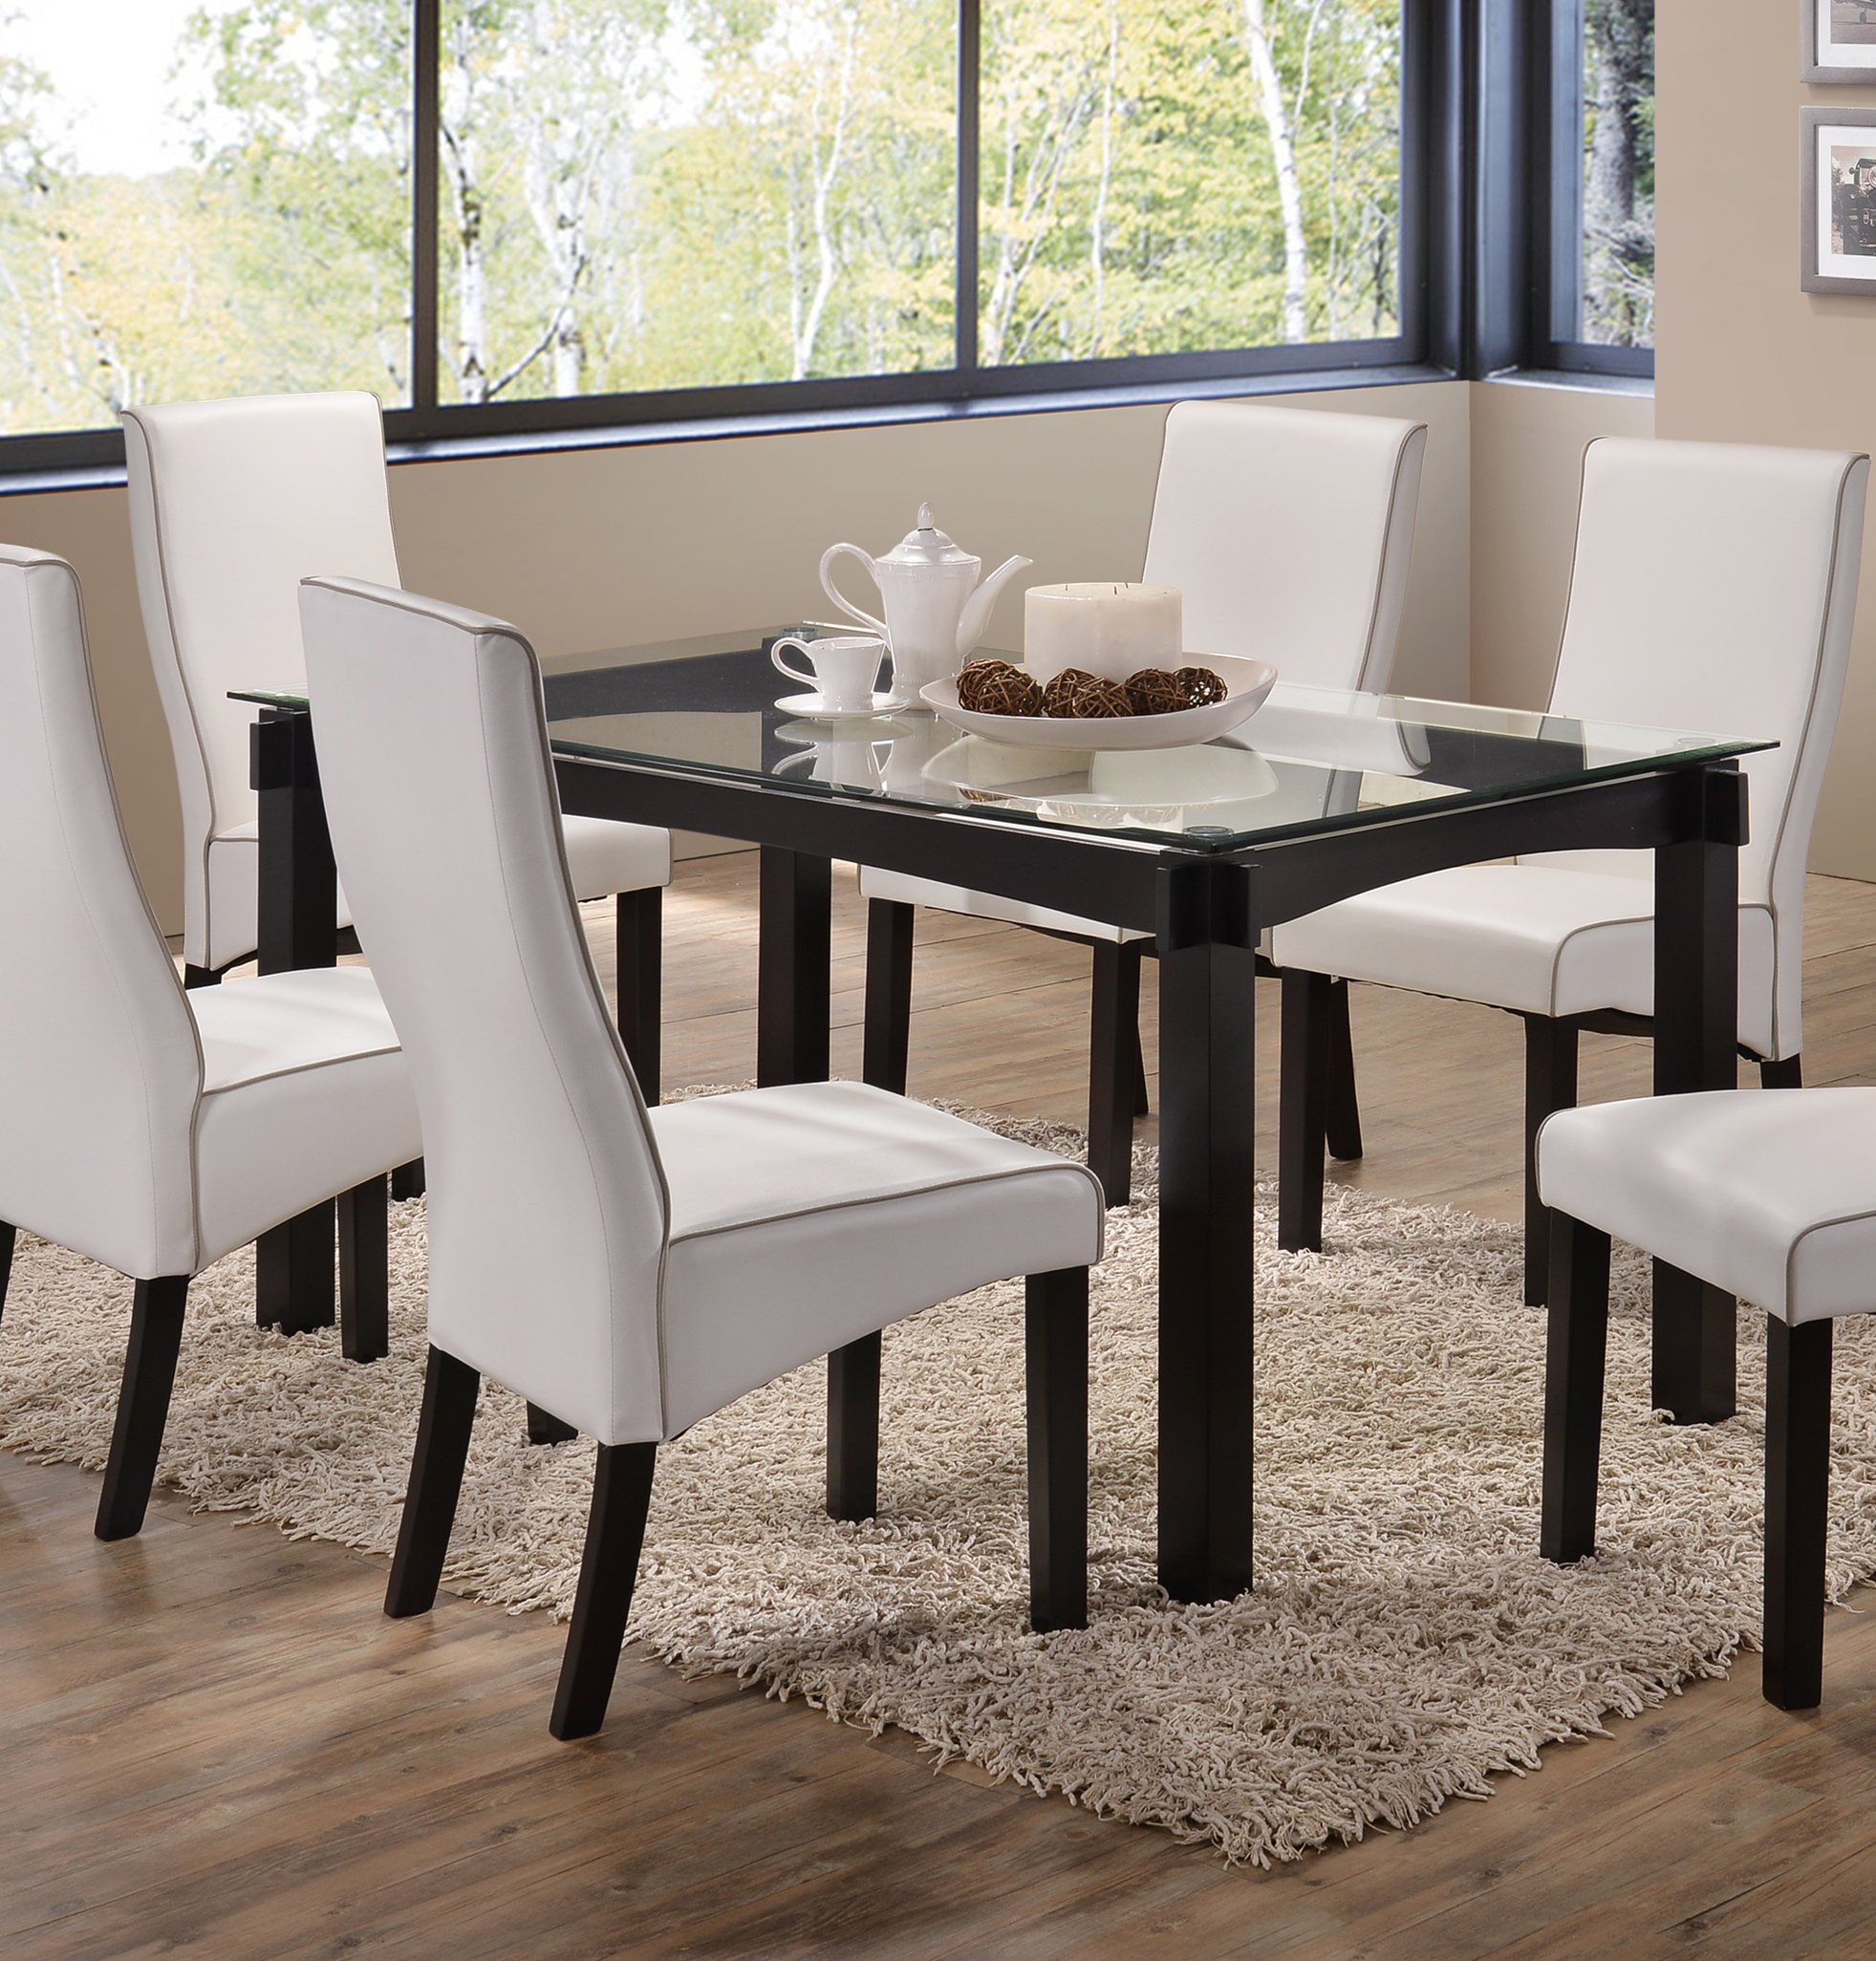 Kings Brand Rectangle Cappuccino Finish Wood With Glass Dining Kitchen Dinette Table by Kings Brand Furniture